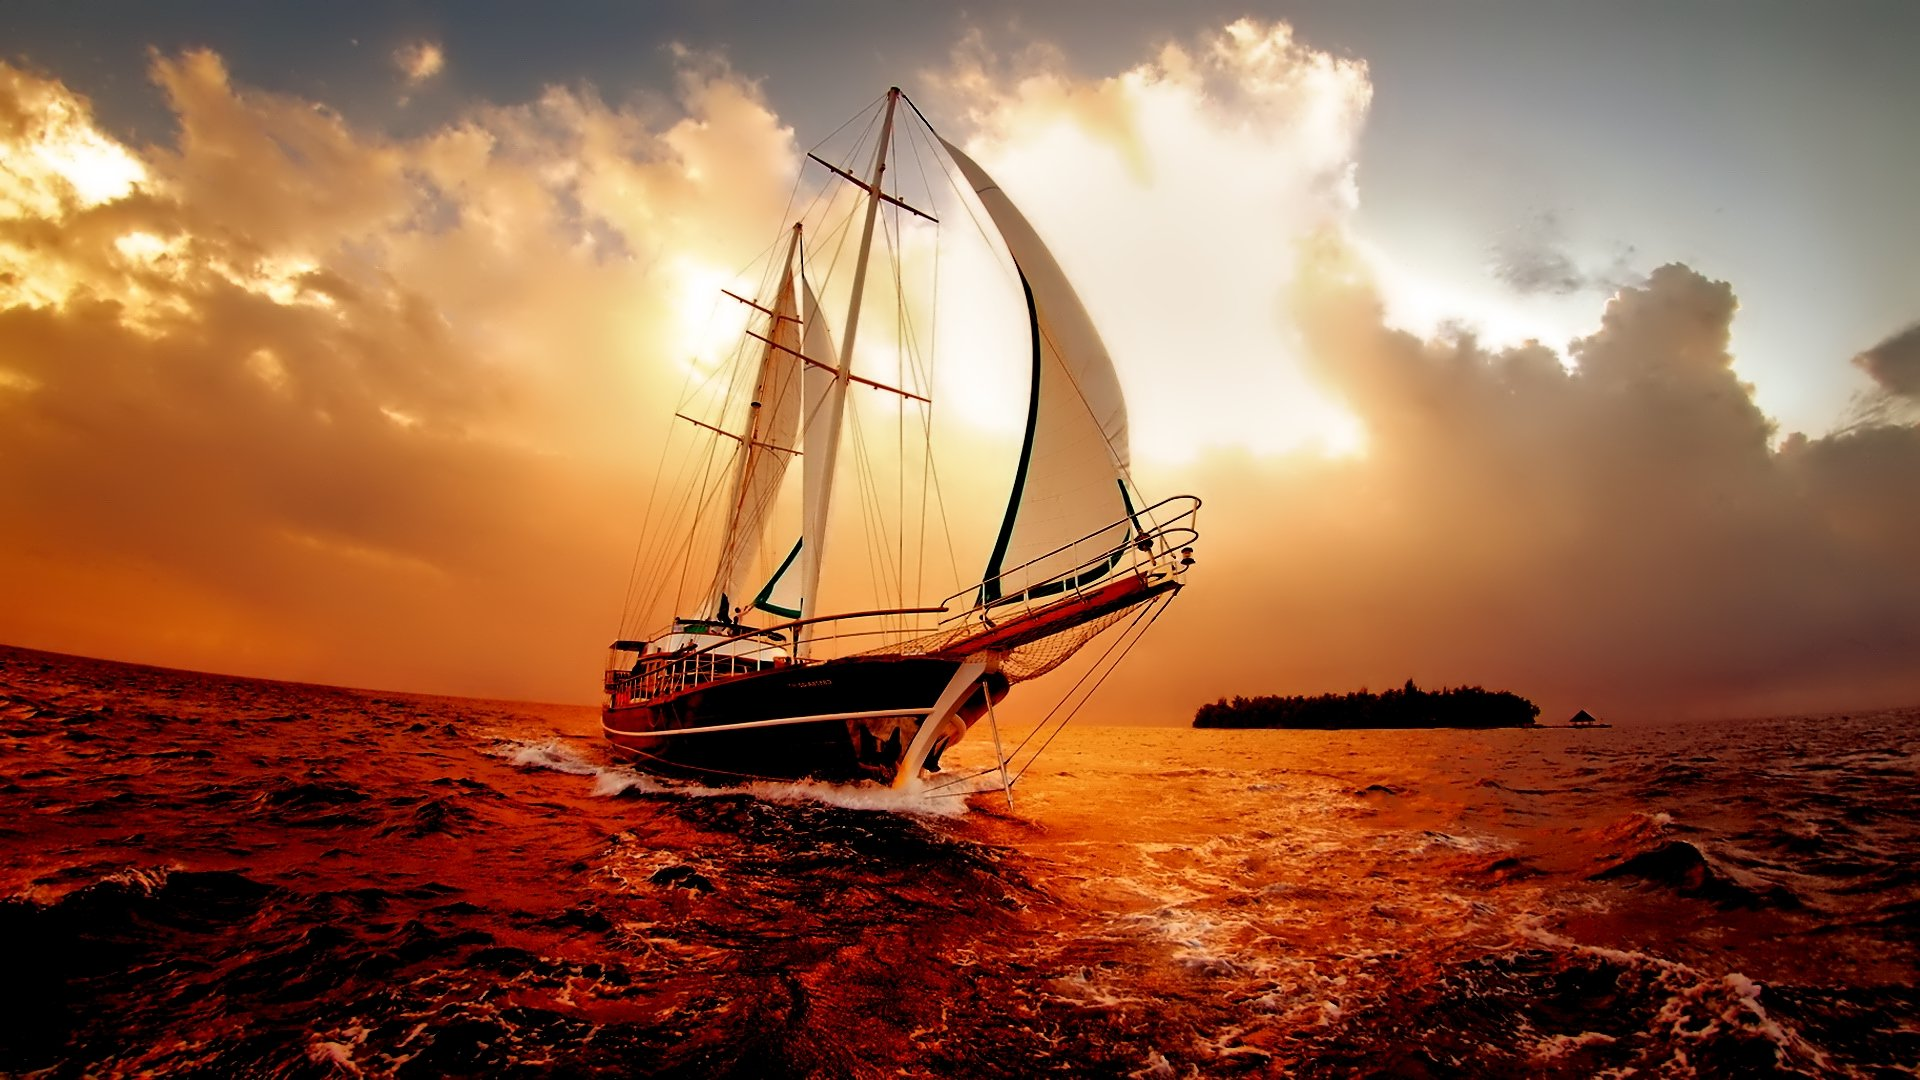 Hd Wallpapers Hd Backgrounds: Sailing Wallpapers HD